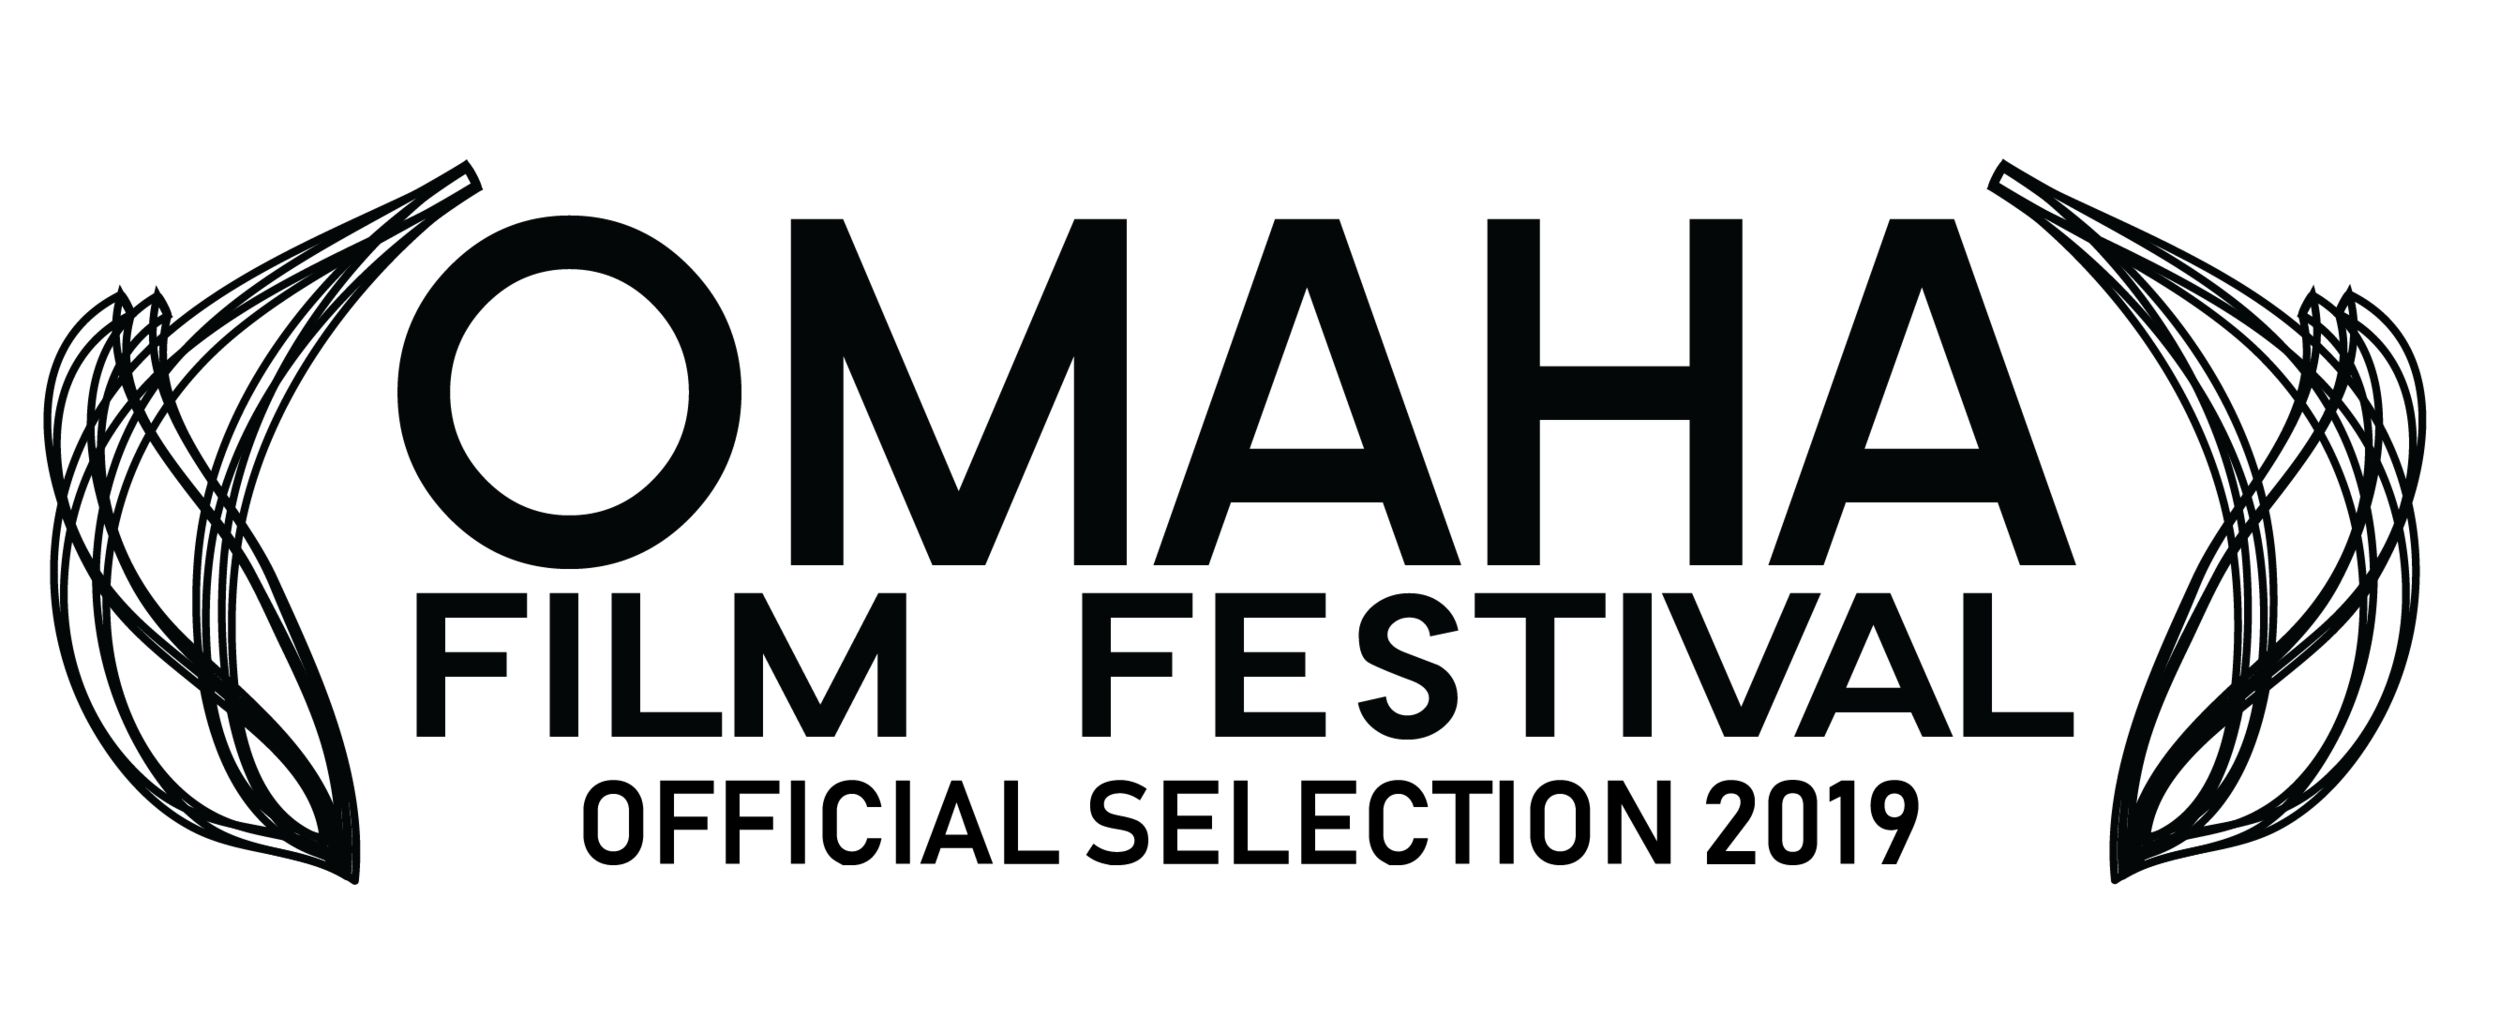 Omaha_Official_Selection_2019-01.png